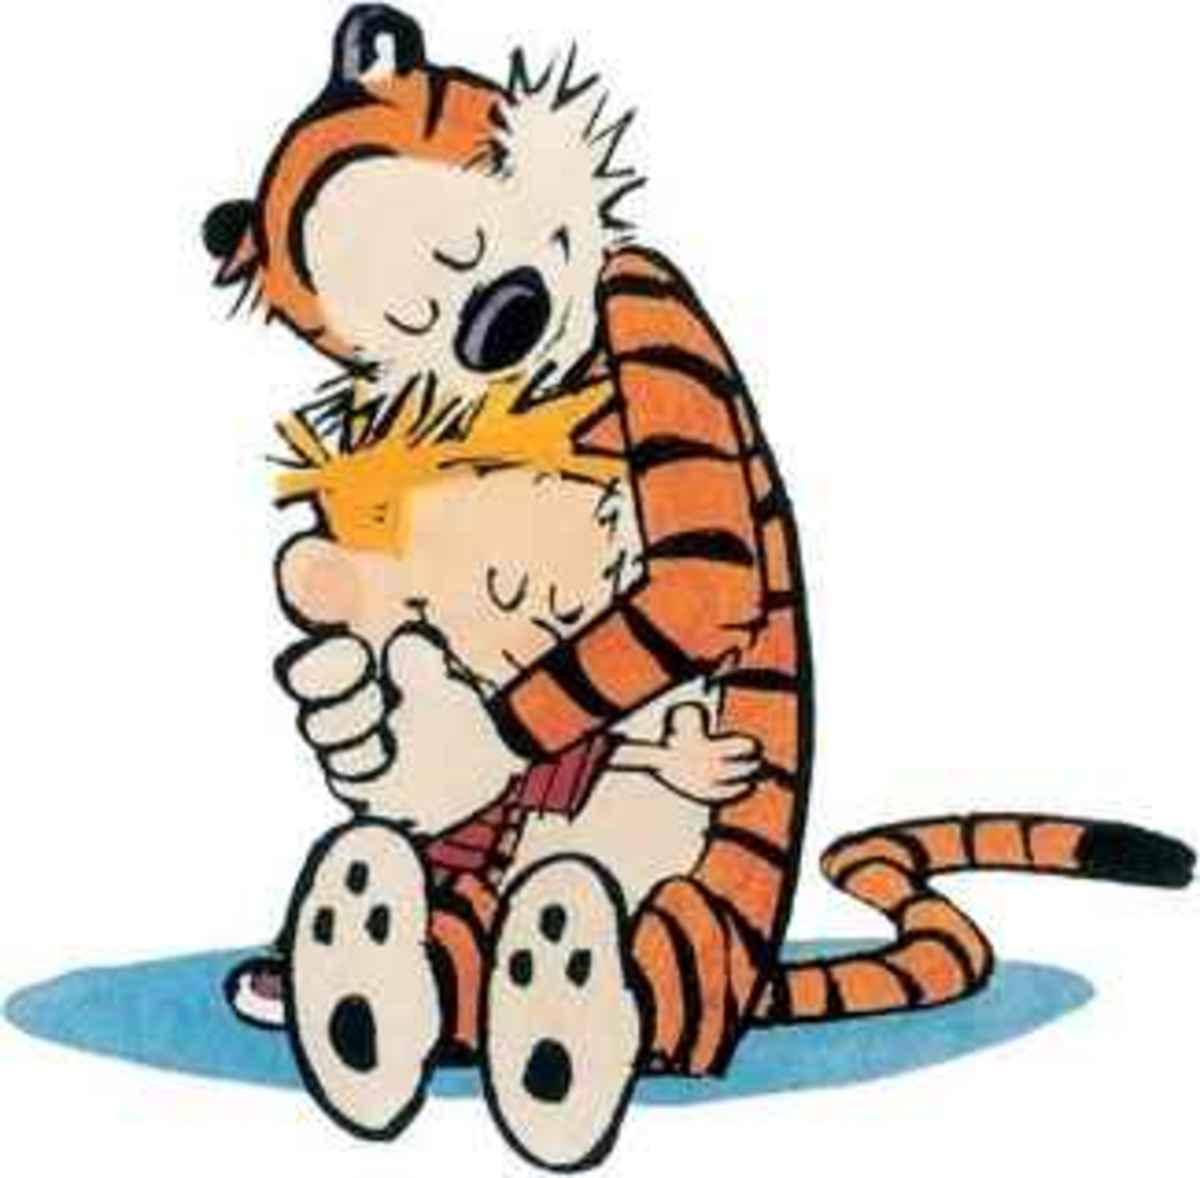 Calvin and Hobbes - together forever